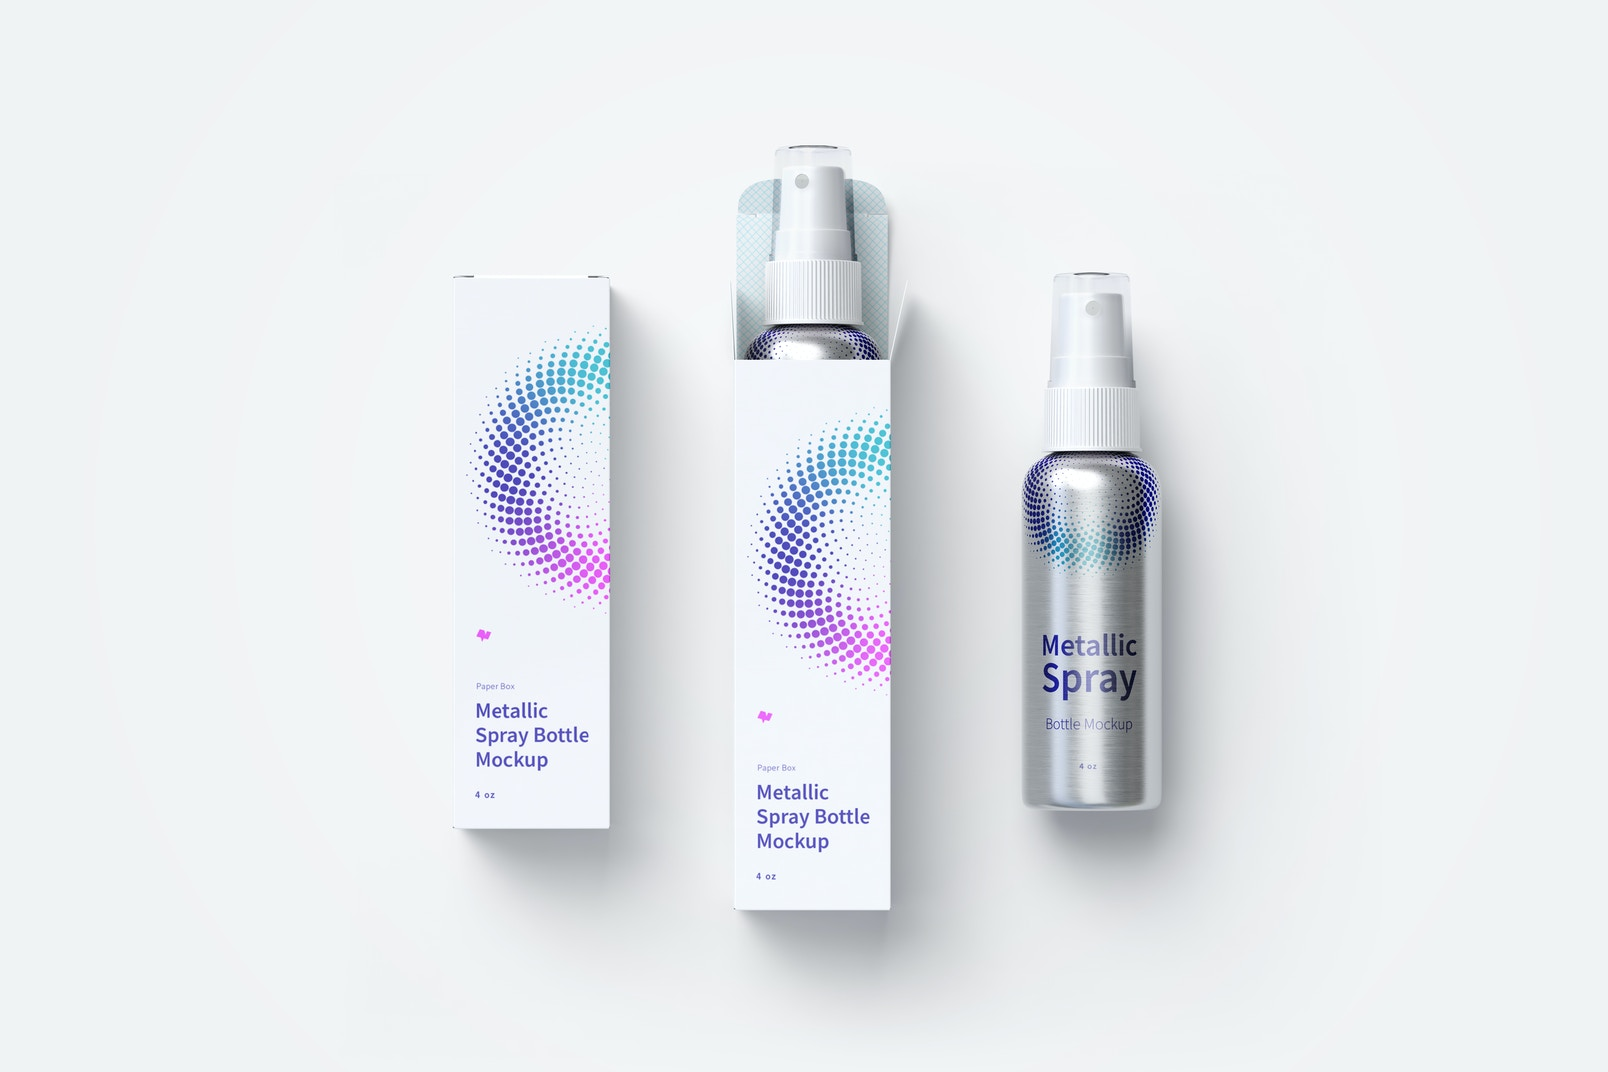 4 oz Metallic Spray Bottles Mockup with Paper Boxes, Top view